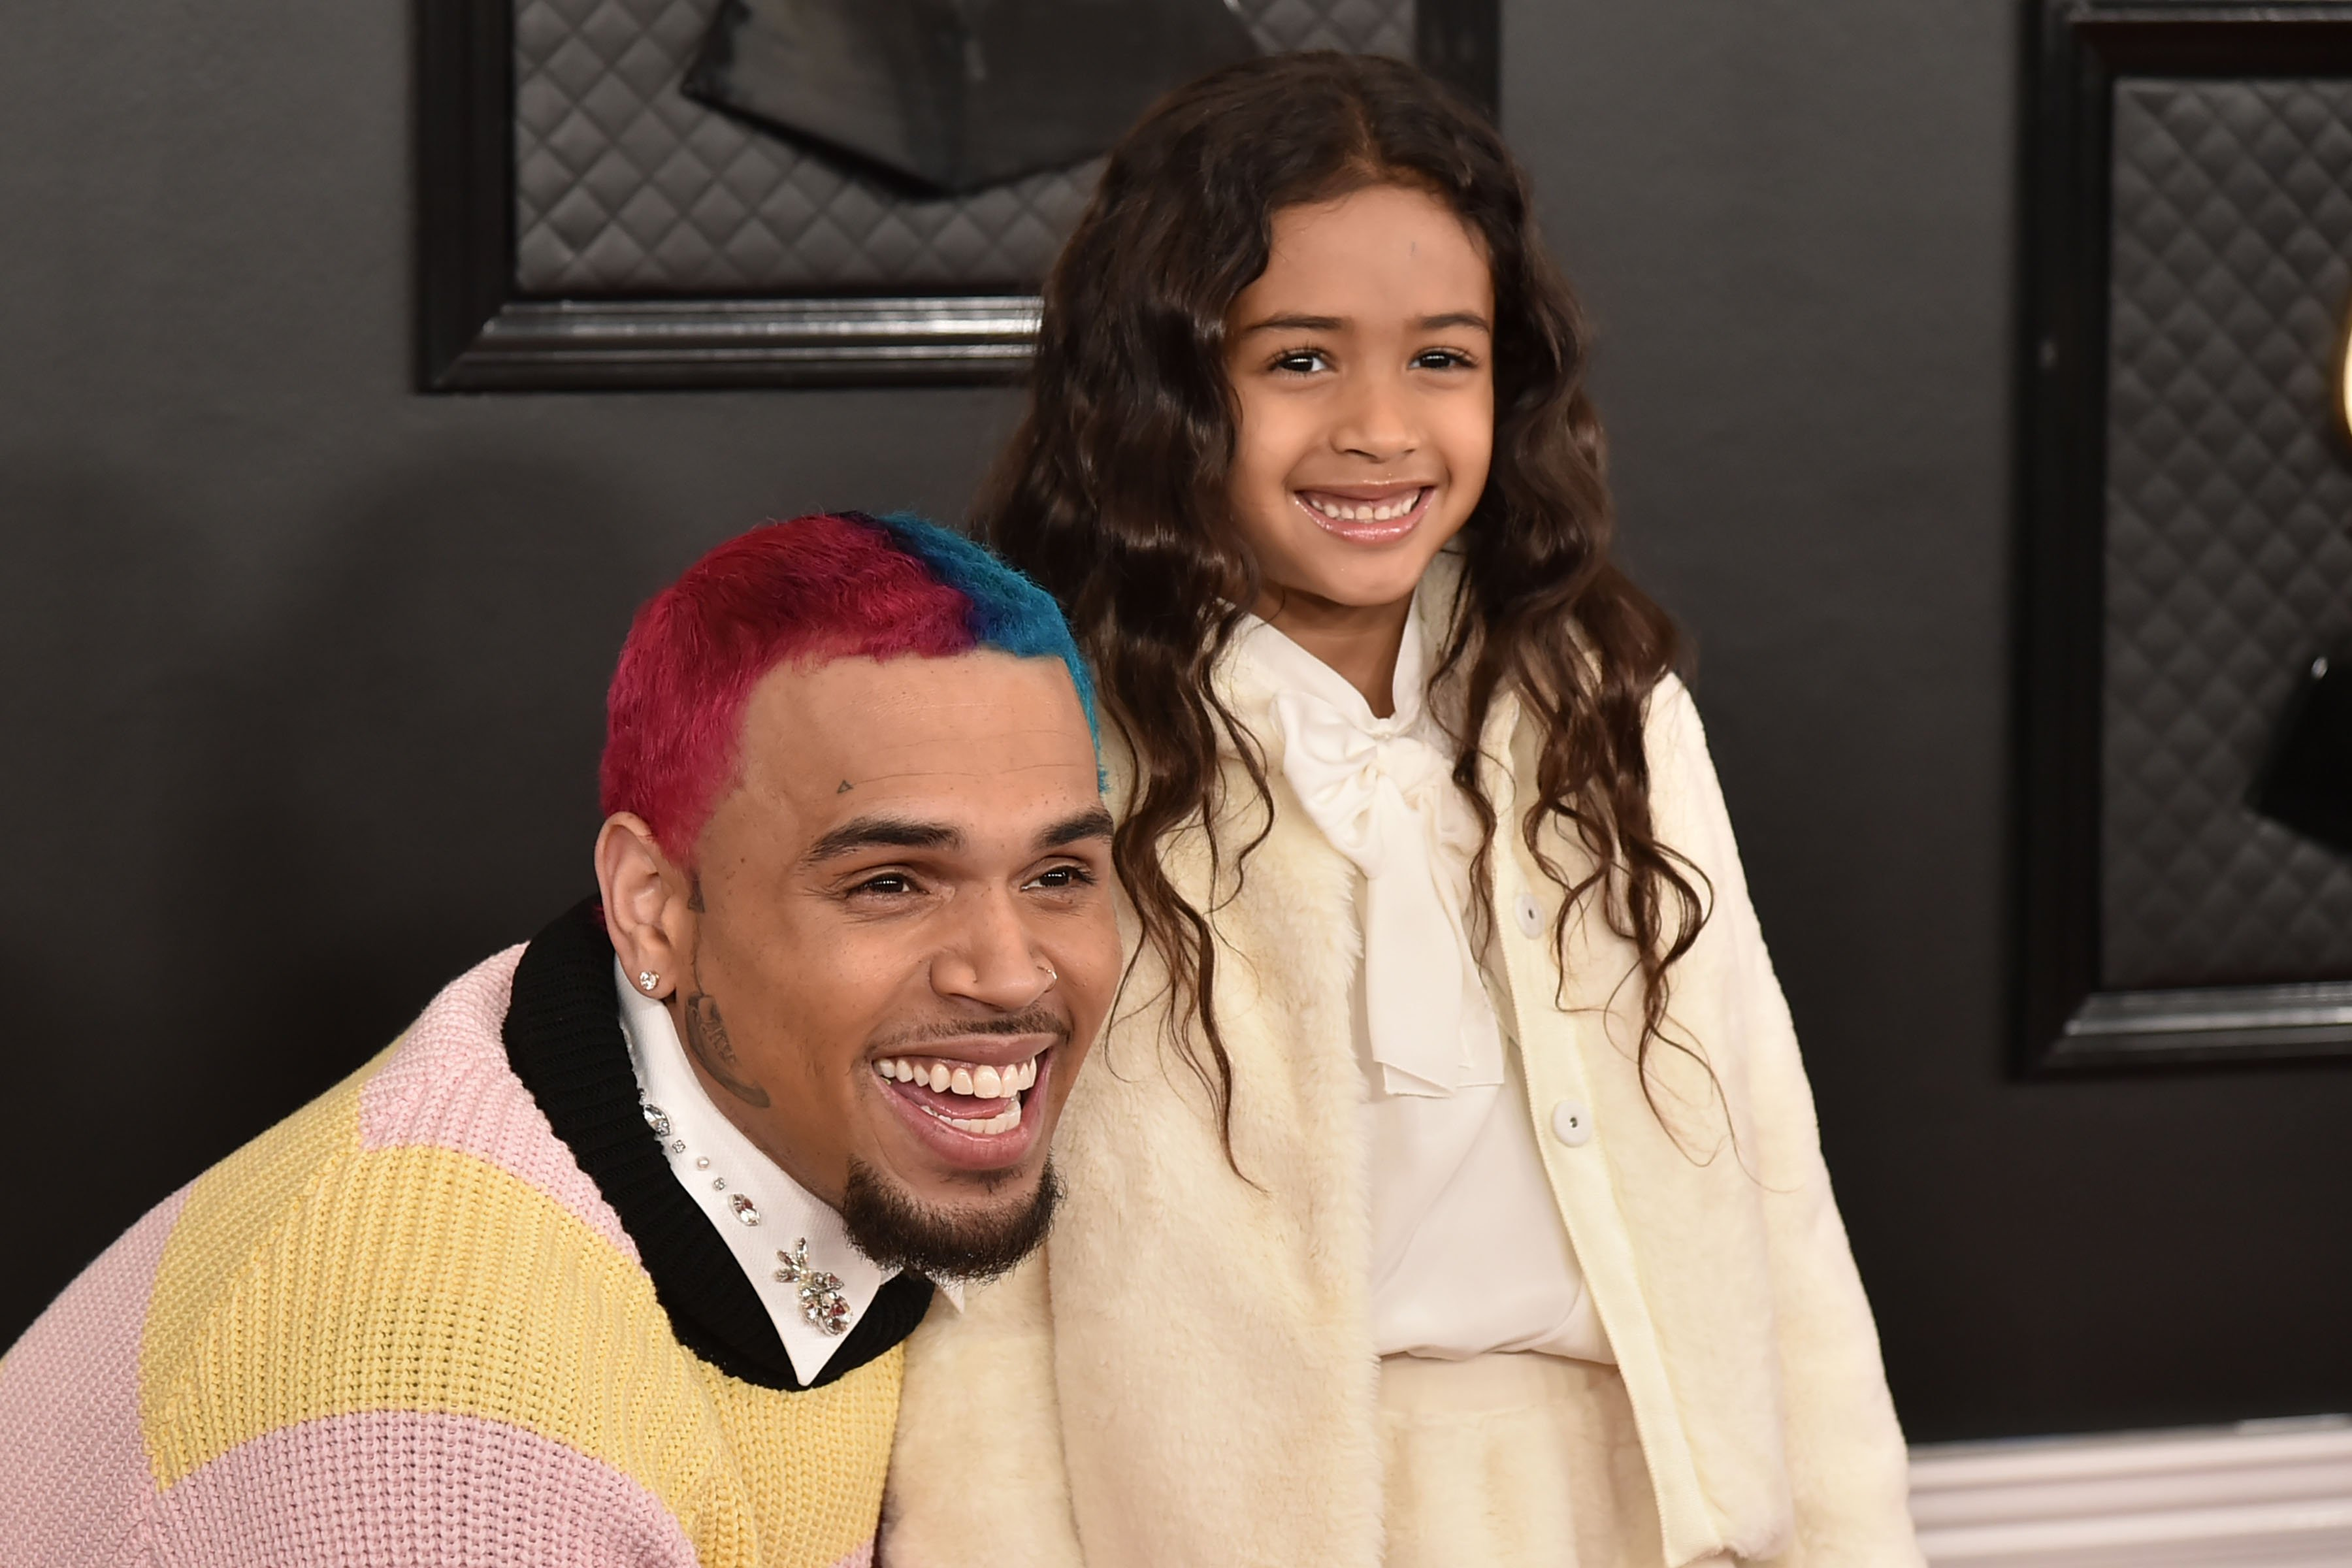 Chris Brown and Royalty Brown pose at the 62nd Annual Grammy Awards at Staples Center on January 26, 2020 in Los Angeles, California.   Source: Getty Images